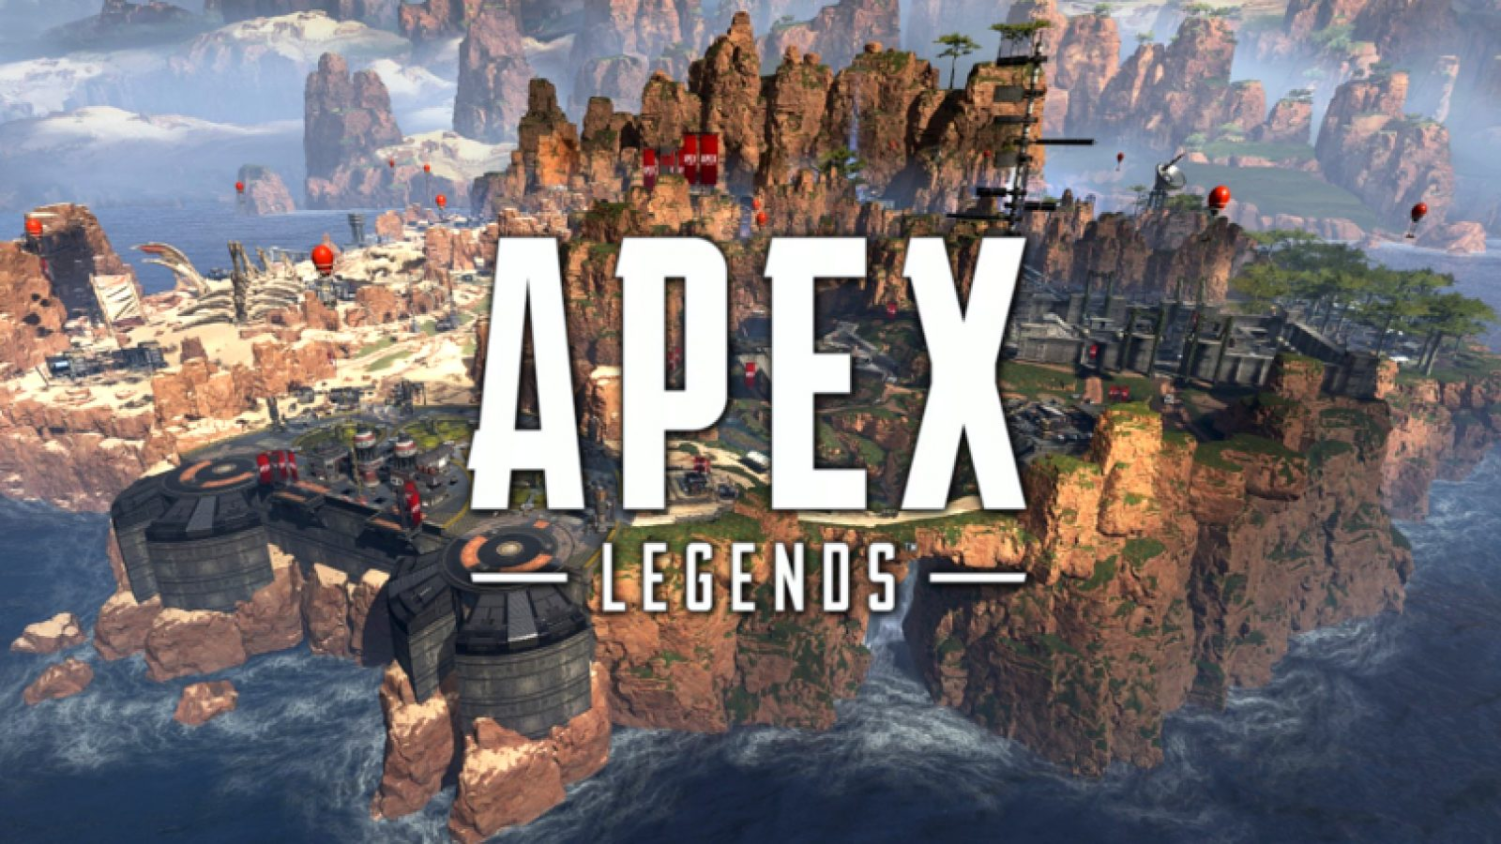 Apex Legends, a battle royale game, has skyrocketed in popularity, gaining millions of players over the past month.